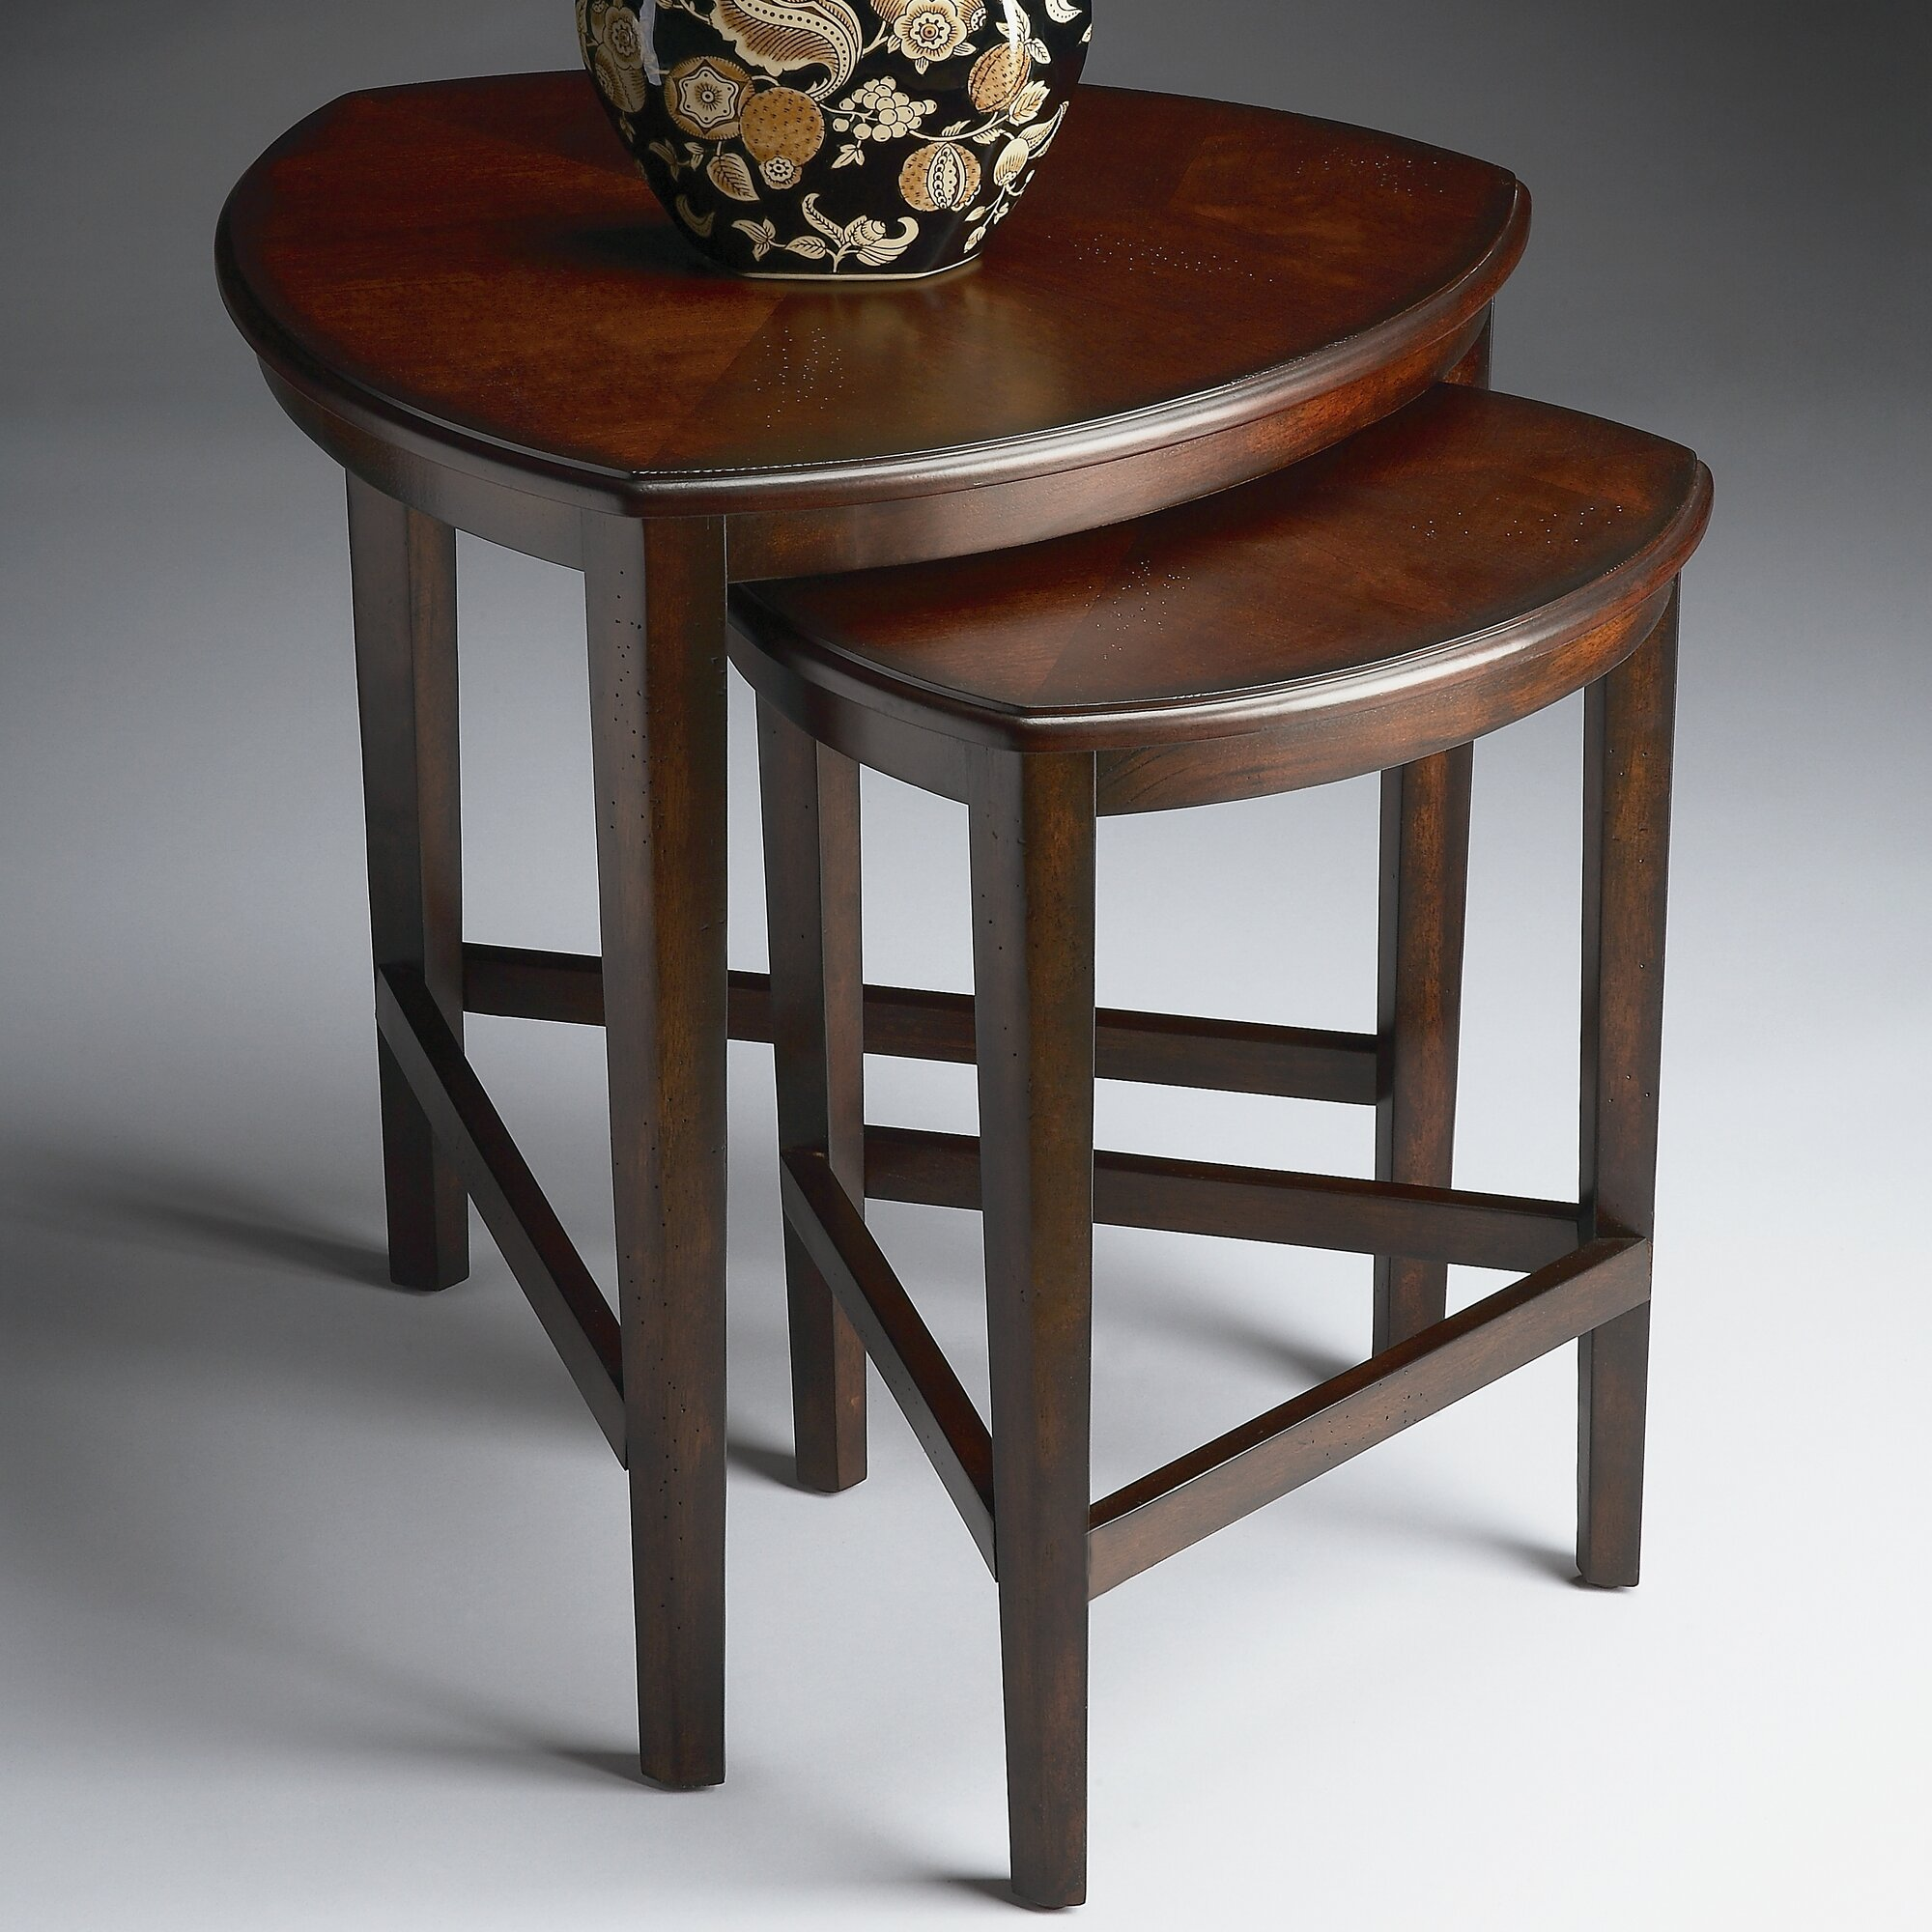 Amazing photo of Details about Butler Finnegan 2 Piece Nesting Tables with #5E4232 color and 2000x2000 pixels